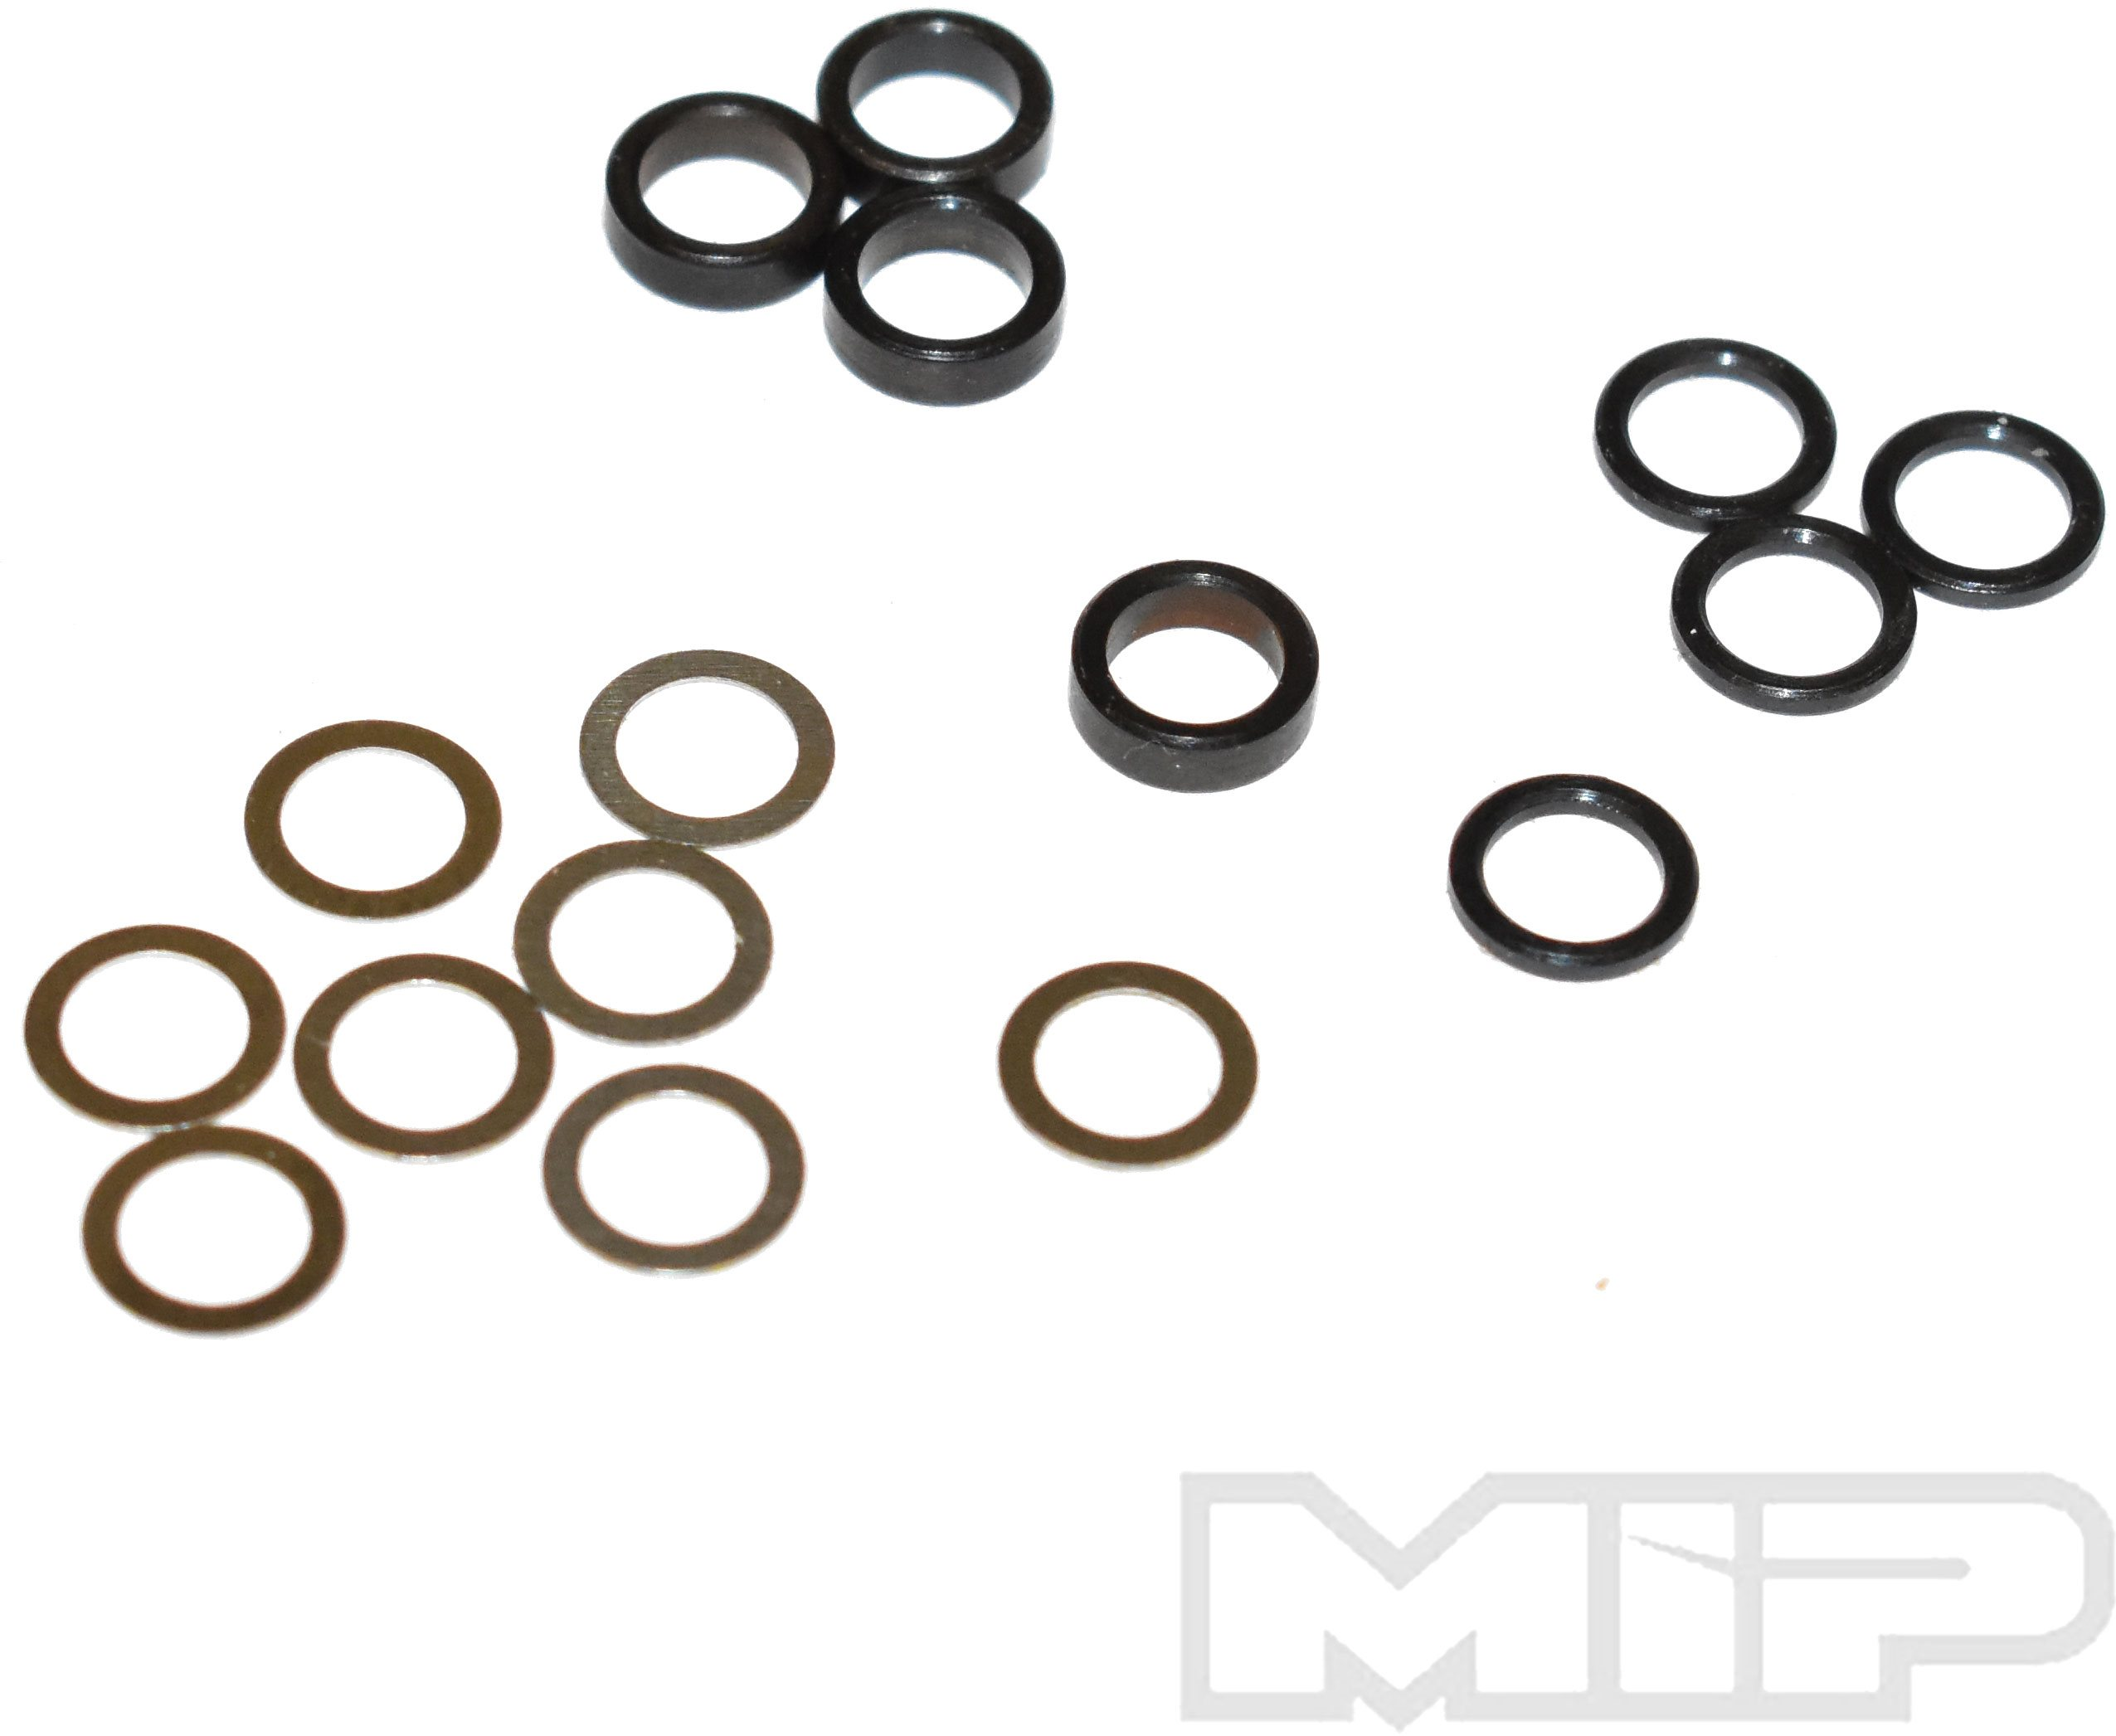 More\'s Ideal Products 5Mm Steel Spacer Kit, .25Mm, 1.0Mm, & 2.3Mm